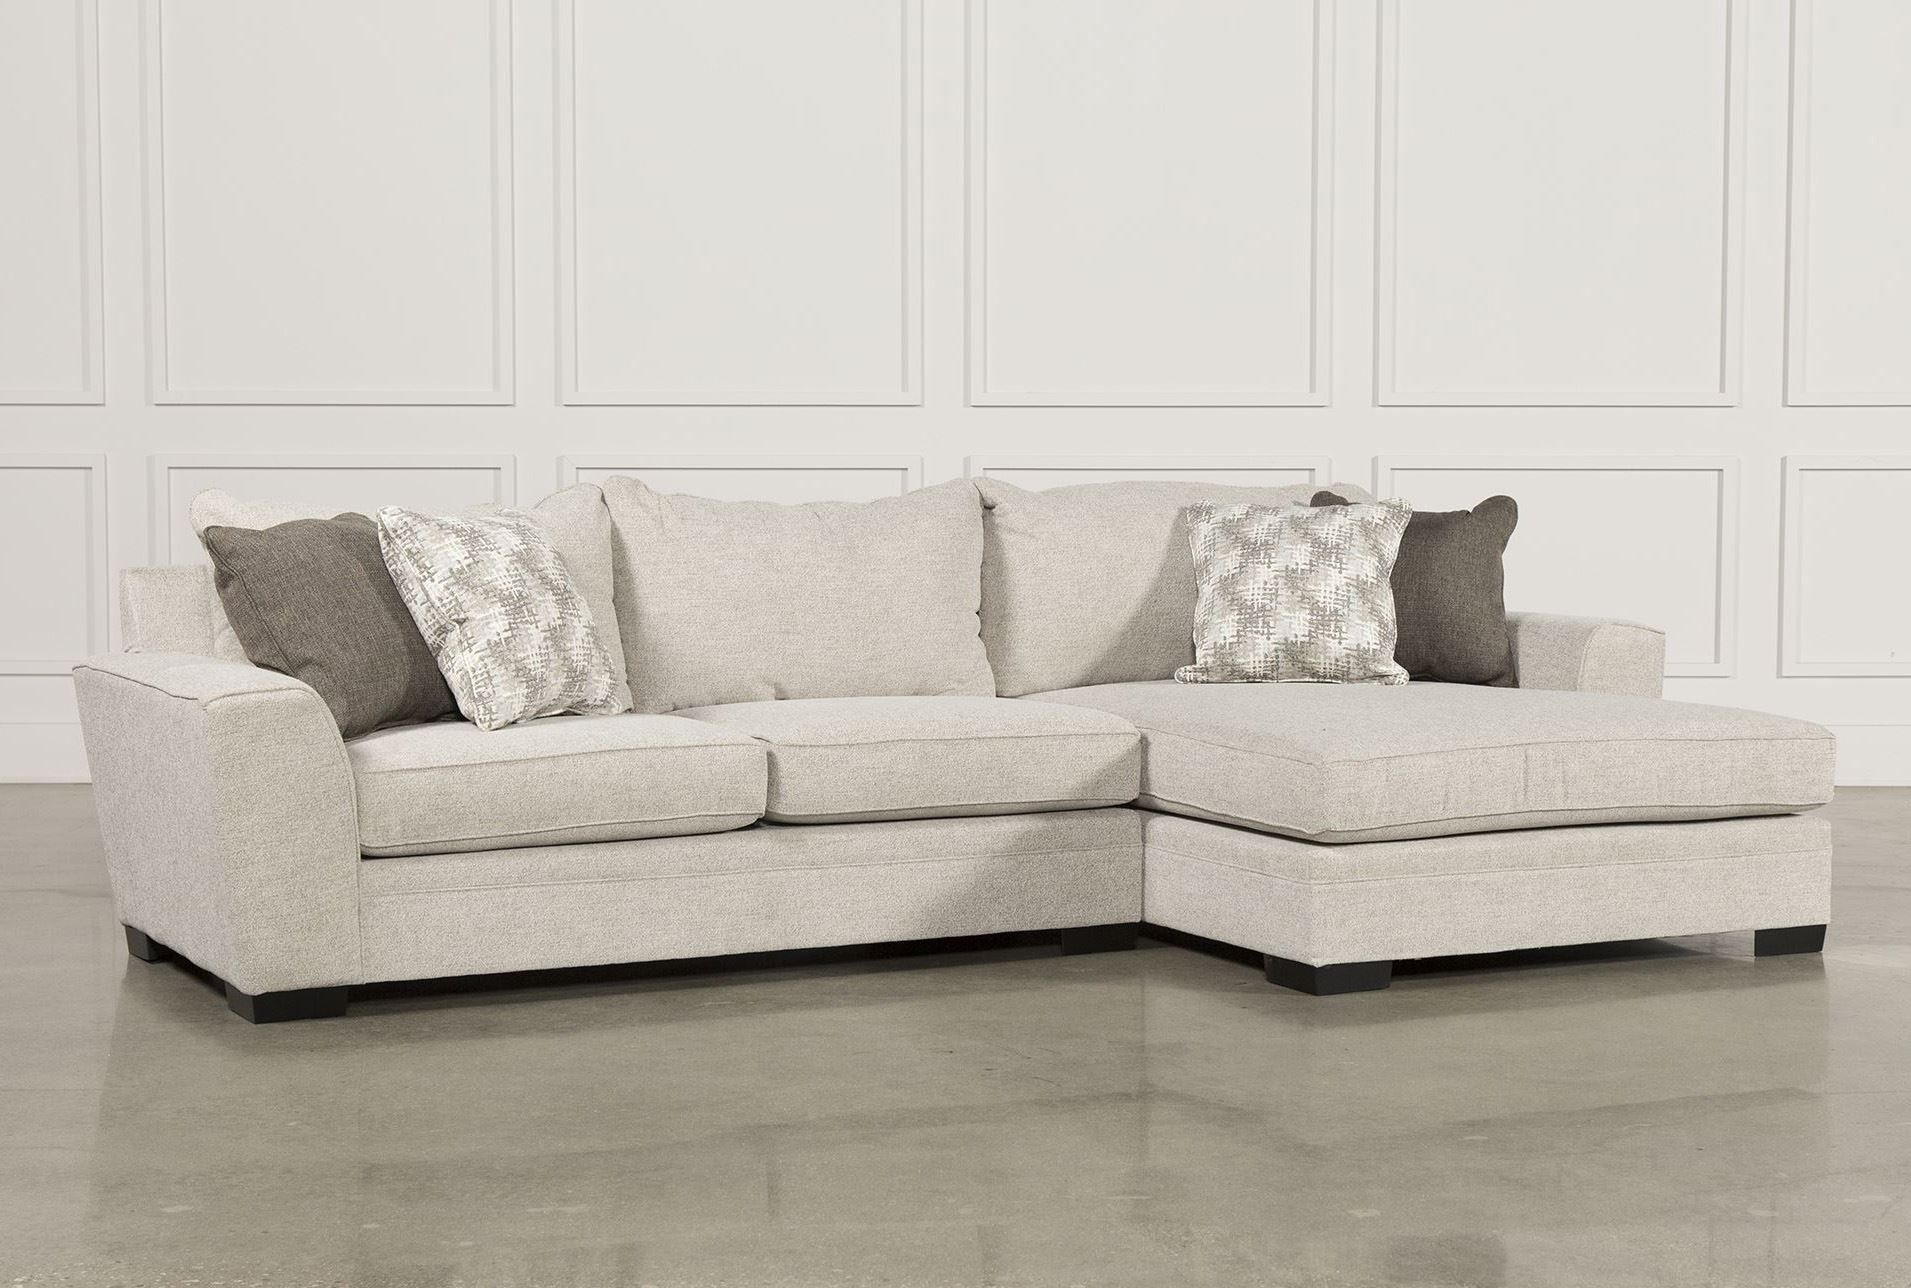 Delano 2 Piece Sectional W/raf Oversized Chaise | New Home In Delano 2 Piece Sectionals With Laf Oversized Chaise (Image 14 of 25)